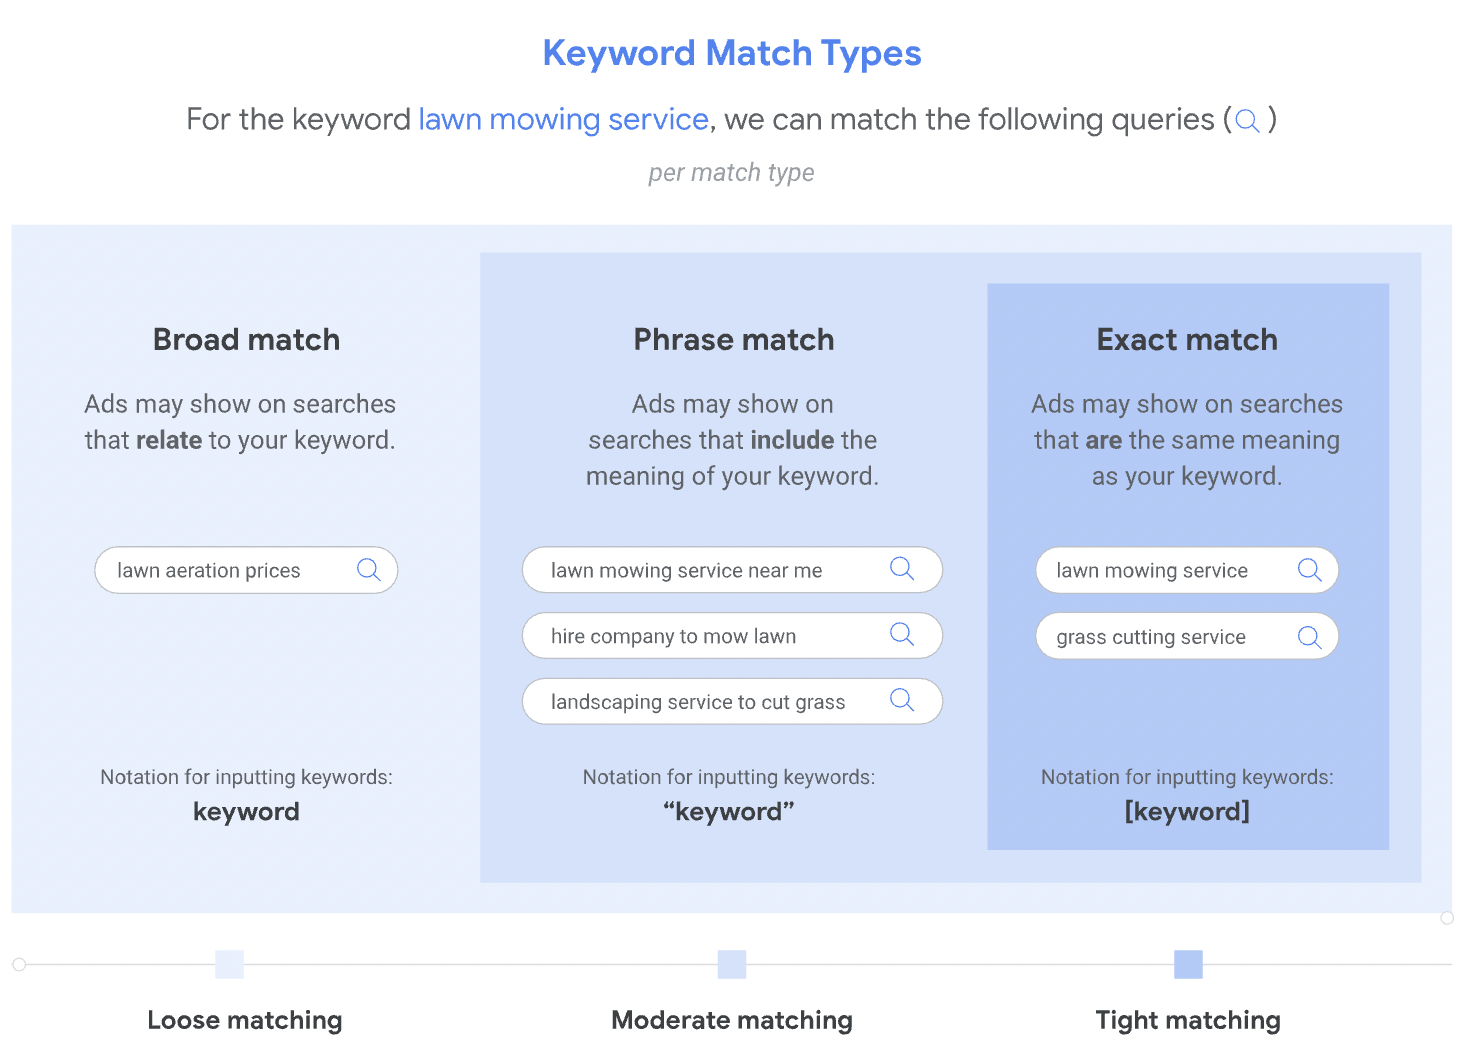 road match (loose), phrase match (moderate), exact match (tight) – source